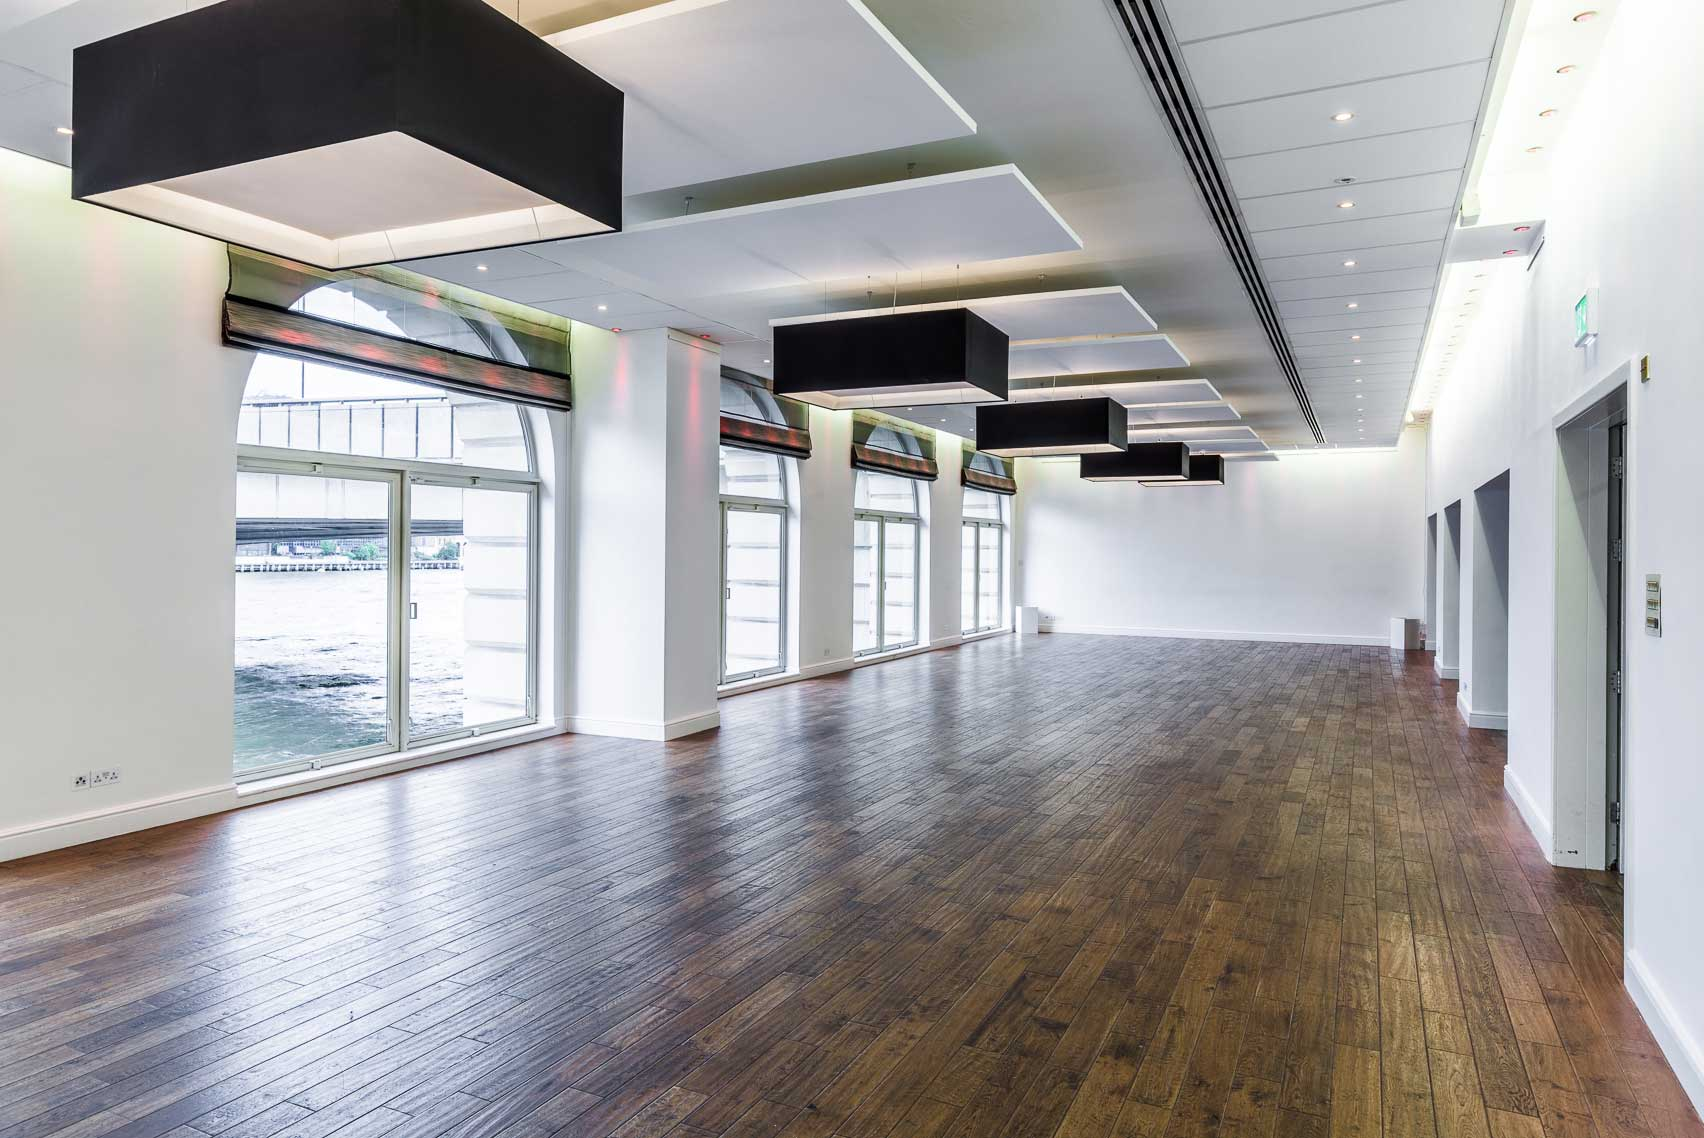 River rooms event space panaromic views at glaziers hall for 1234 get on the dance floor mp3 song download